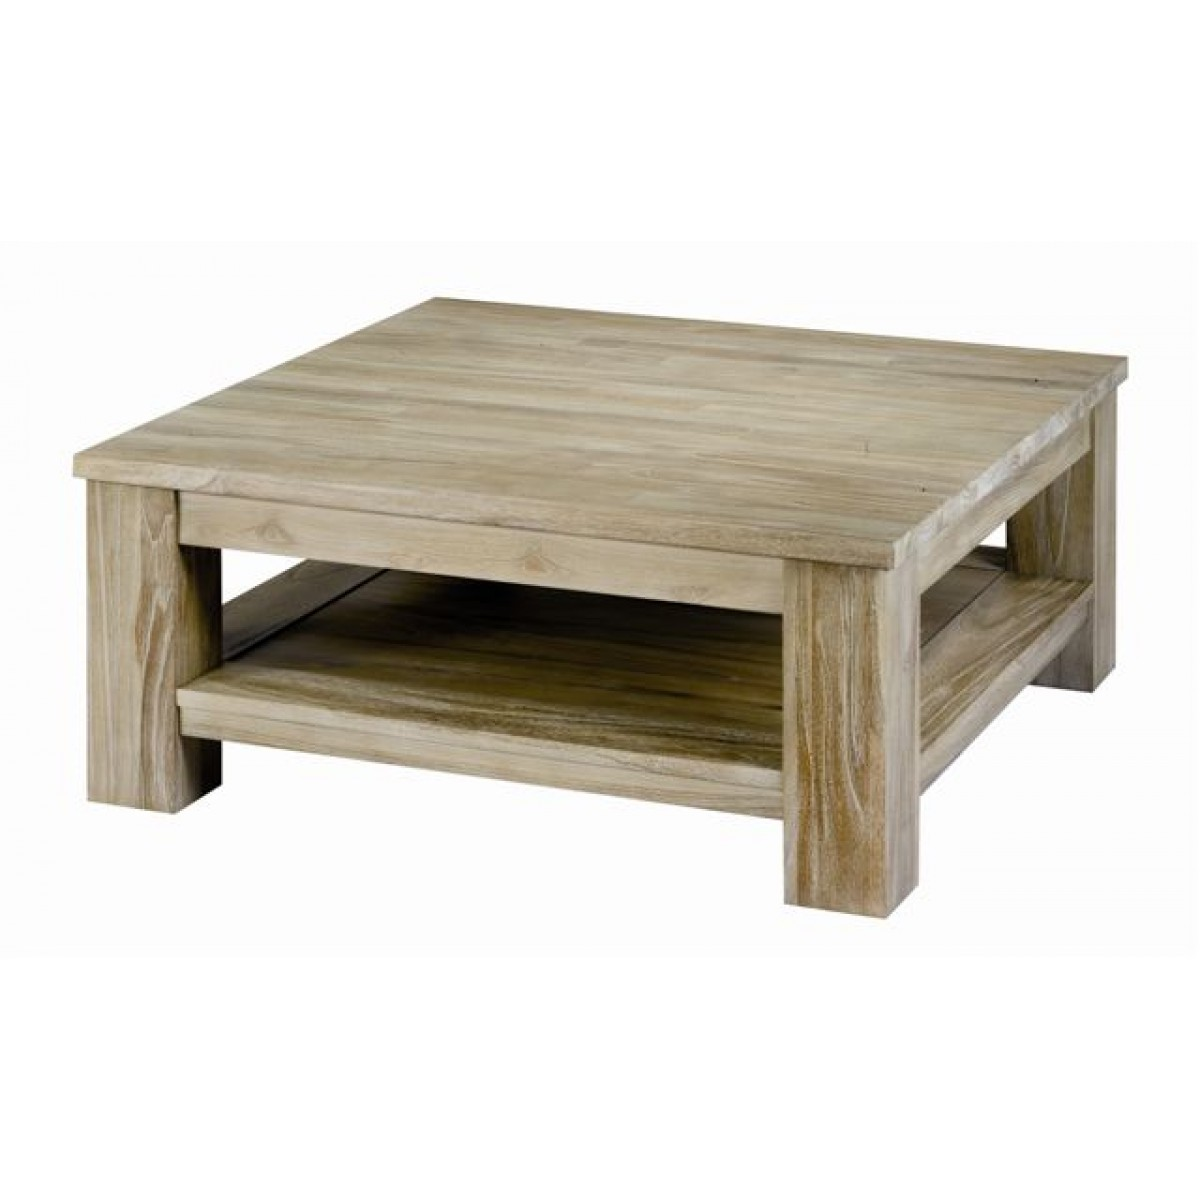 Table Basse Carree Vitree En Teck Brut Qualite